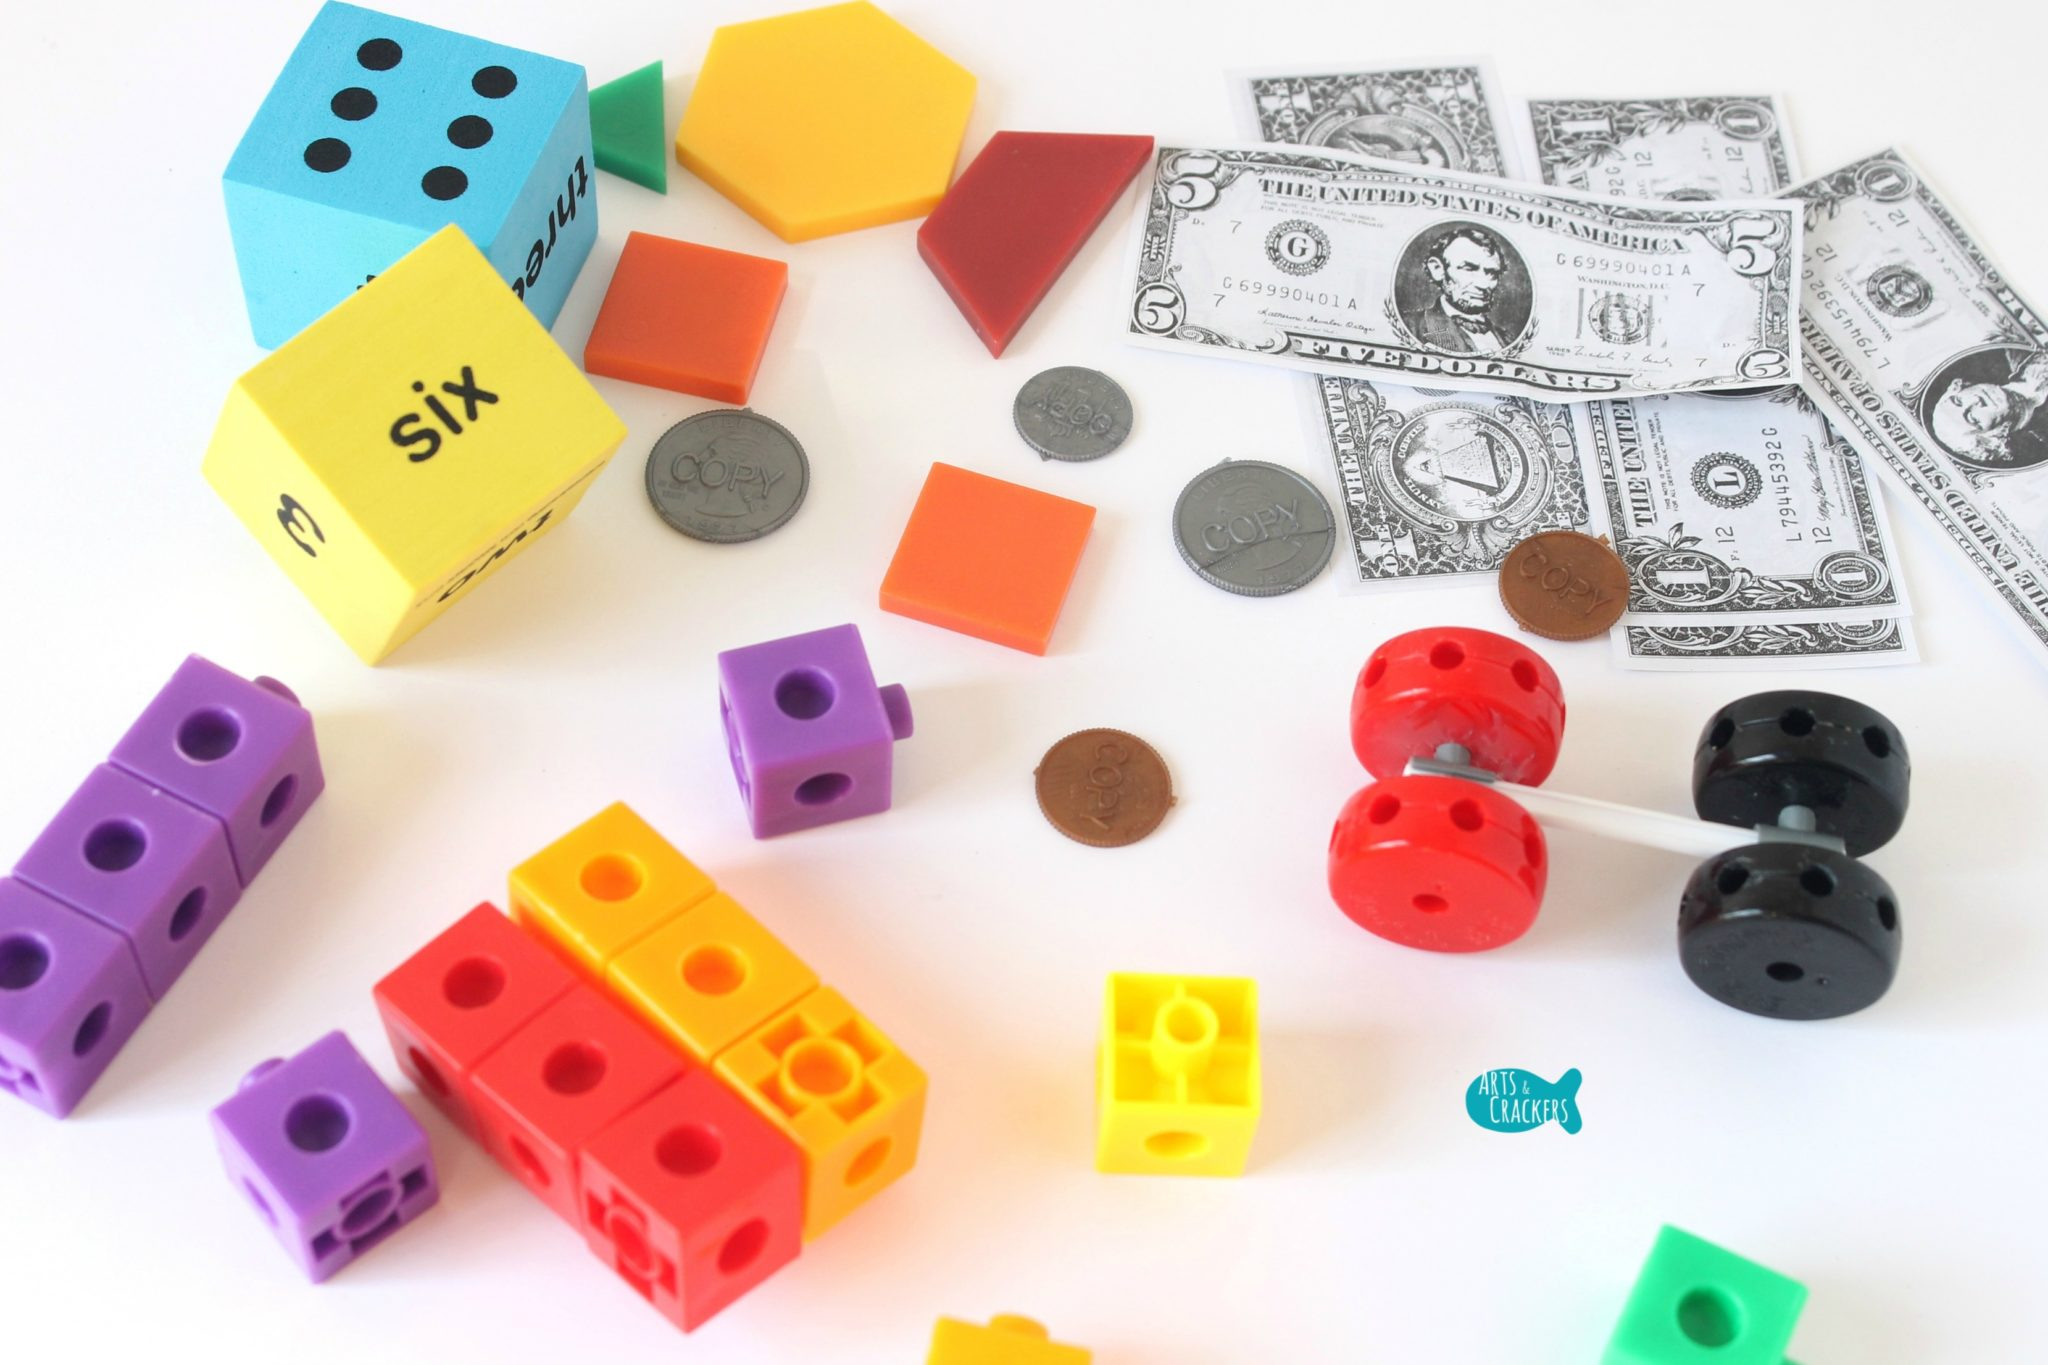 Our Favorite Engineering and Math Manipulatives for Kids